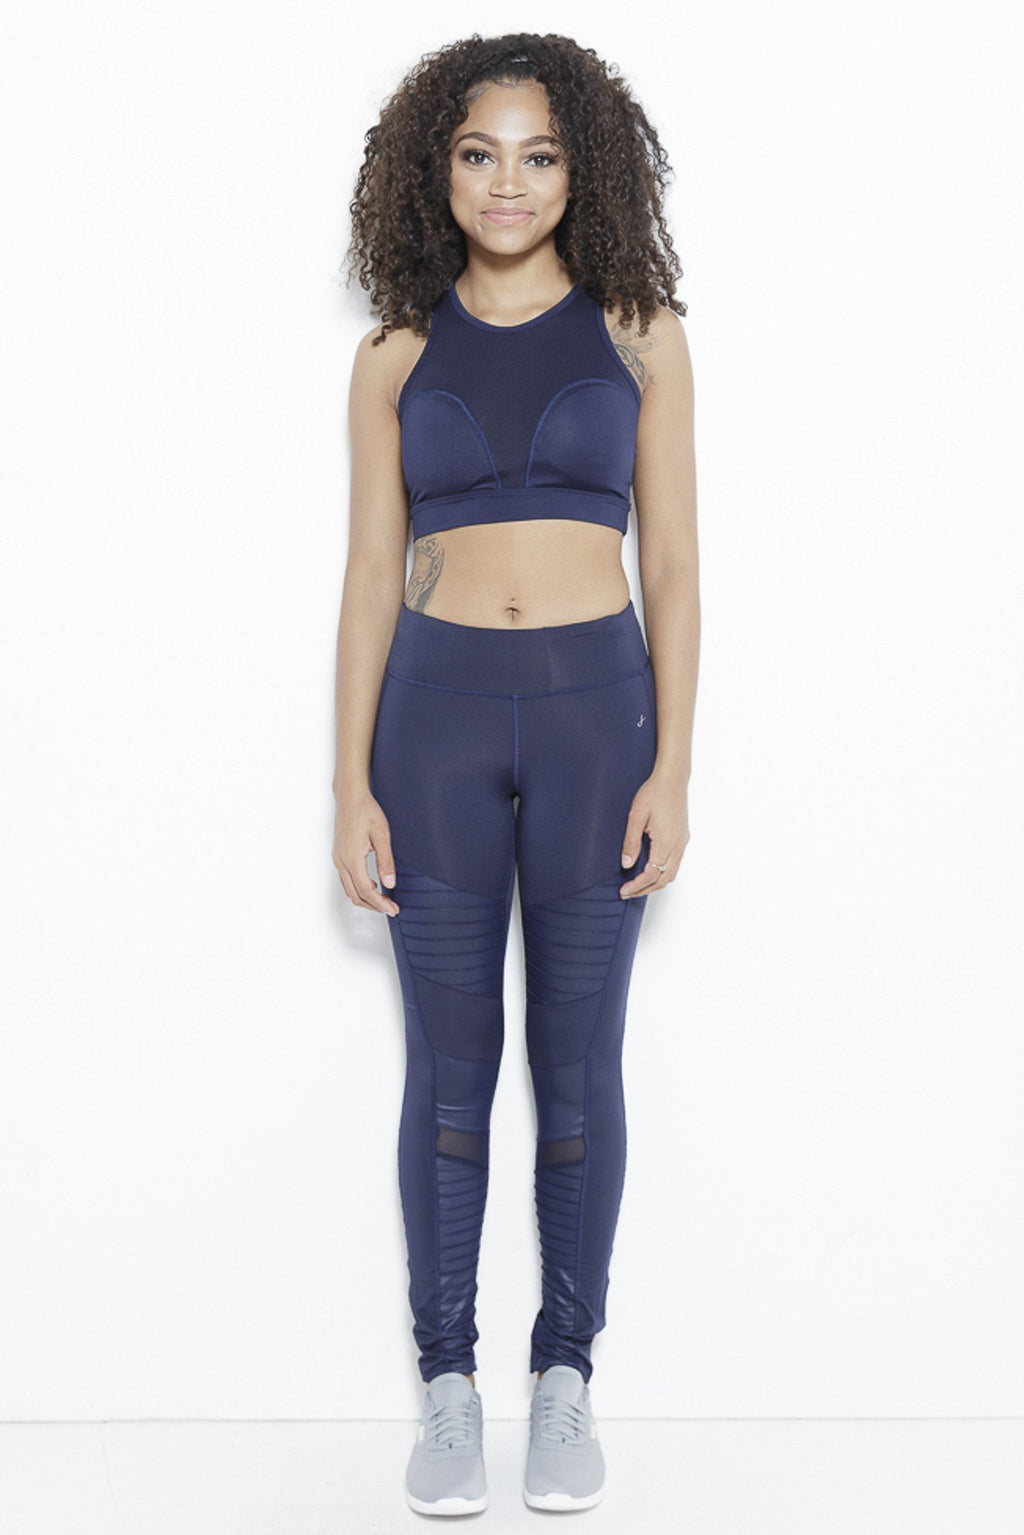 fair-shade - The Ripple Dream Active Leggings-Navy - Clothing